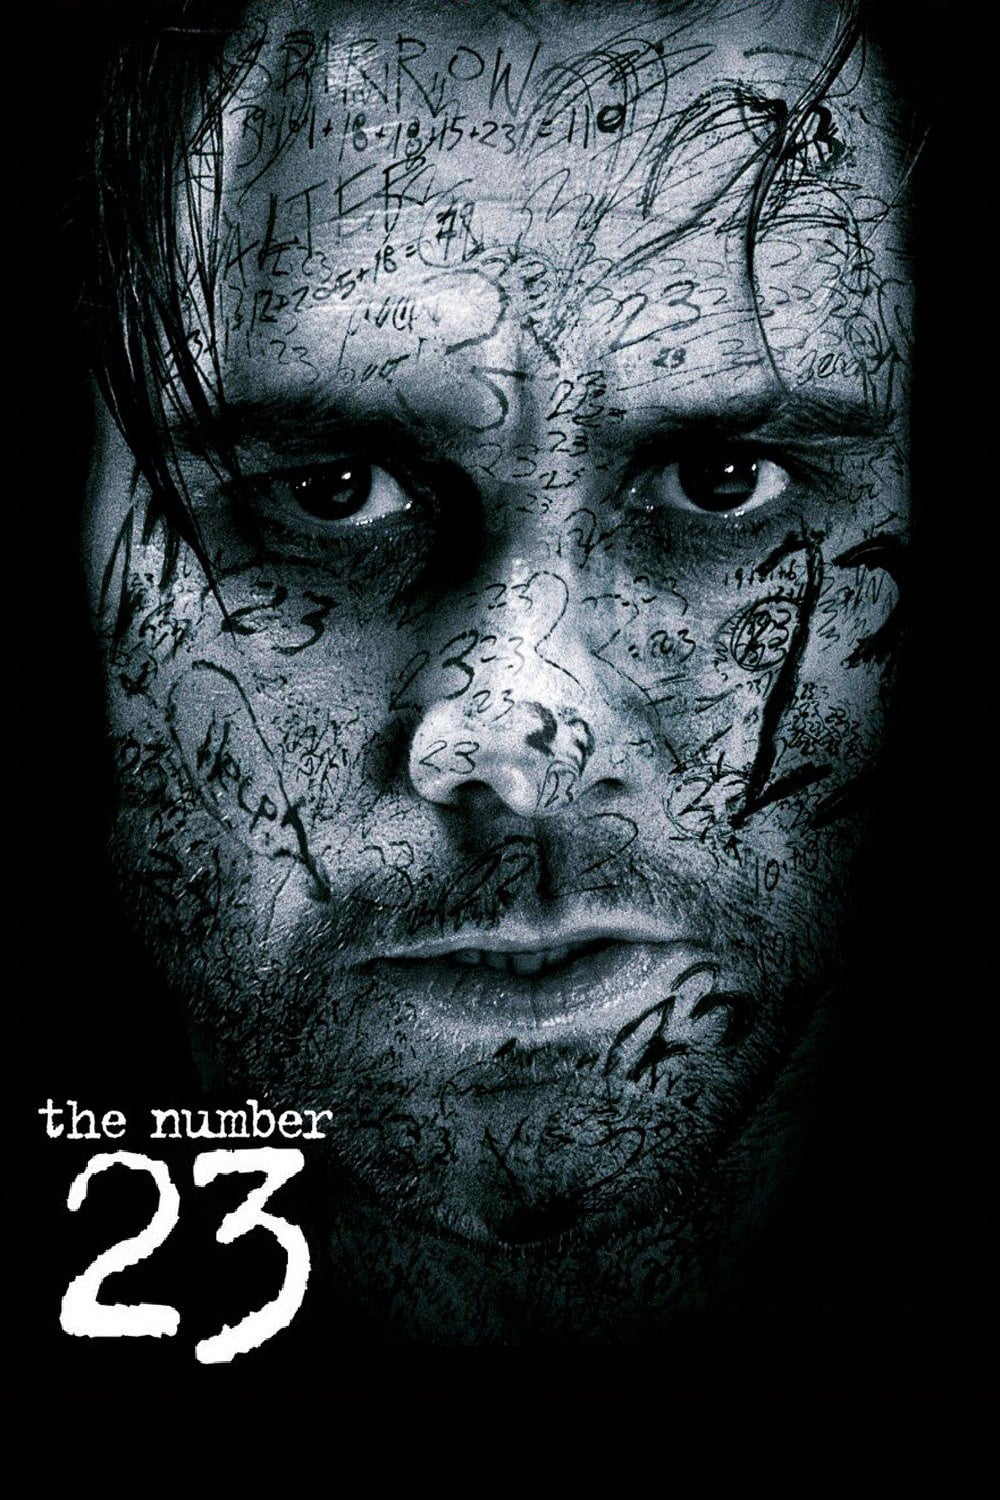 The Number 23, 2007